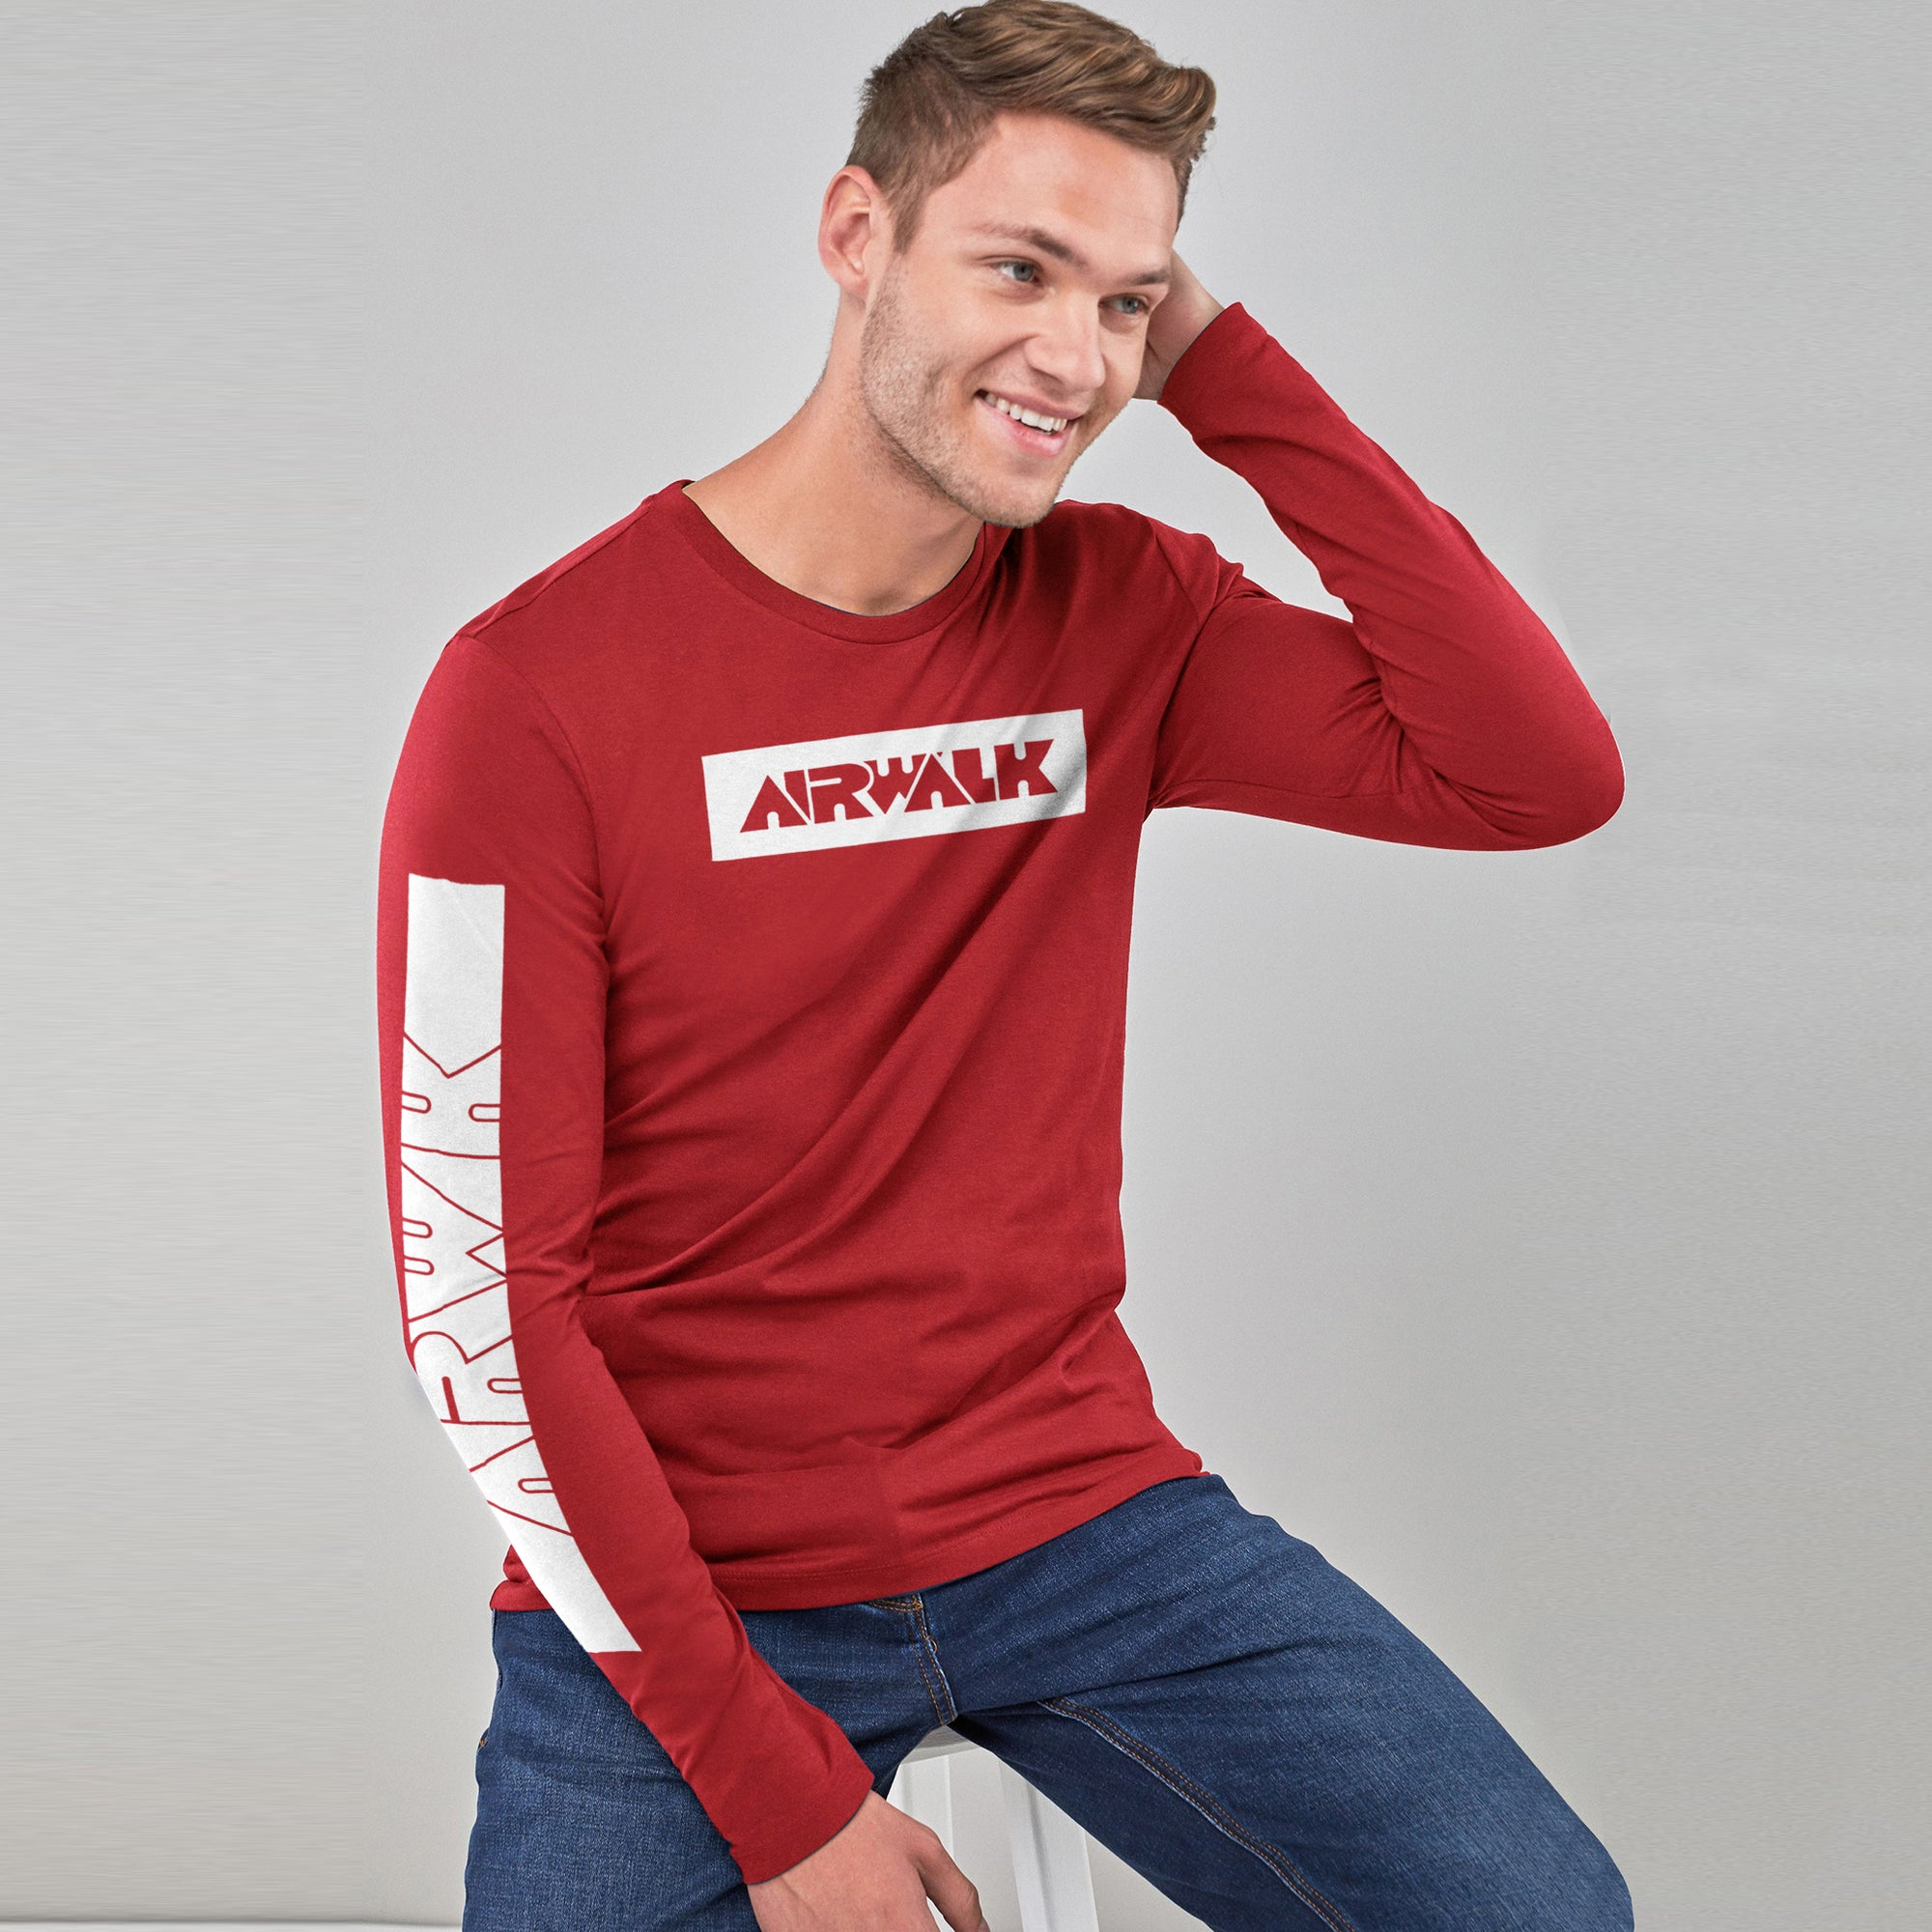 Air Walk Single Jersey Shirt For Men-Red-BE8144